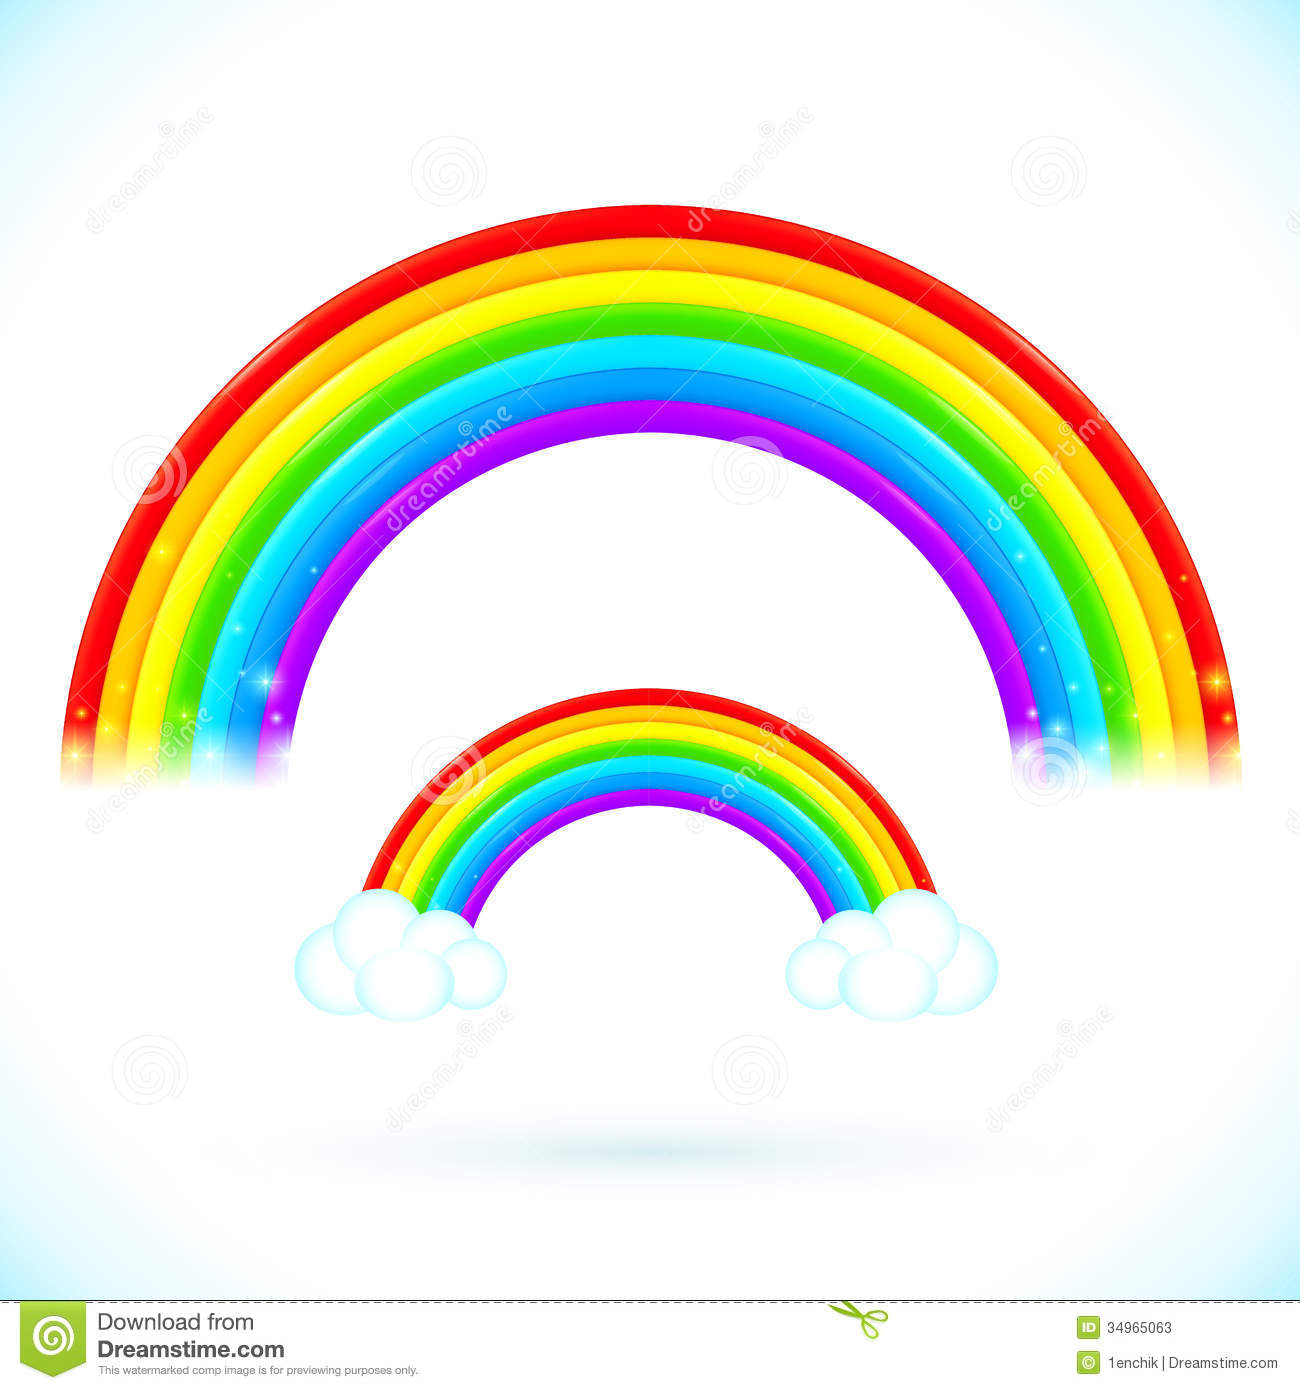 Black And White Rainbow Outline | Clipart Panda - Free Clipart Images